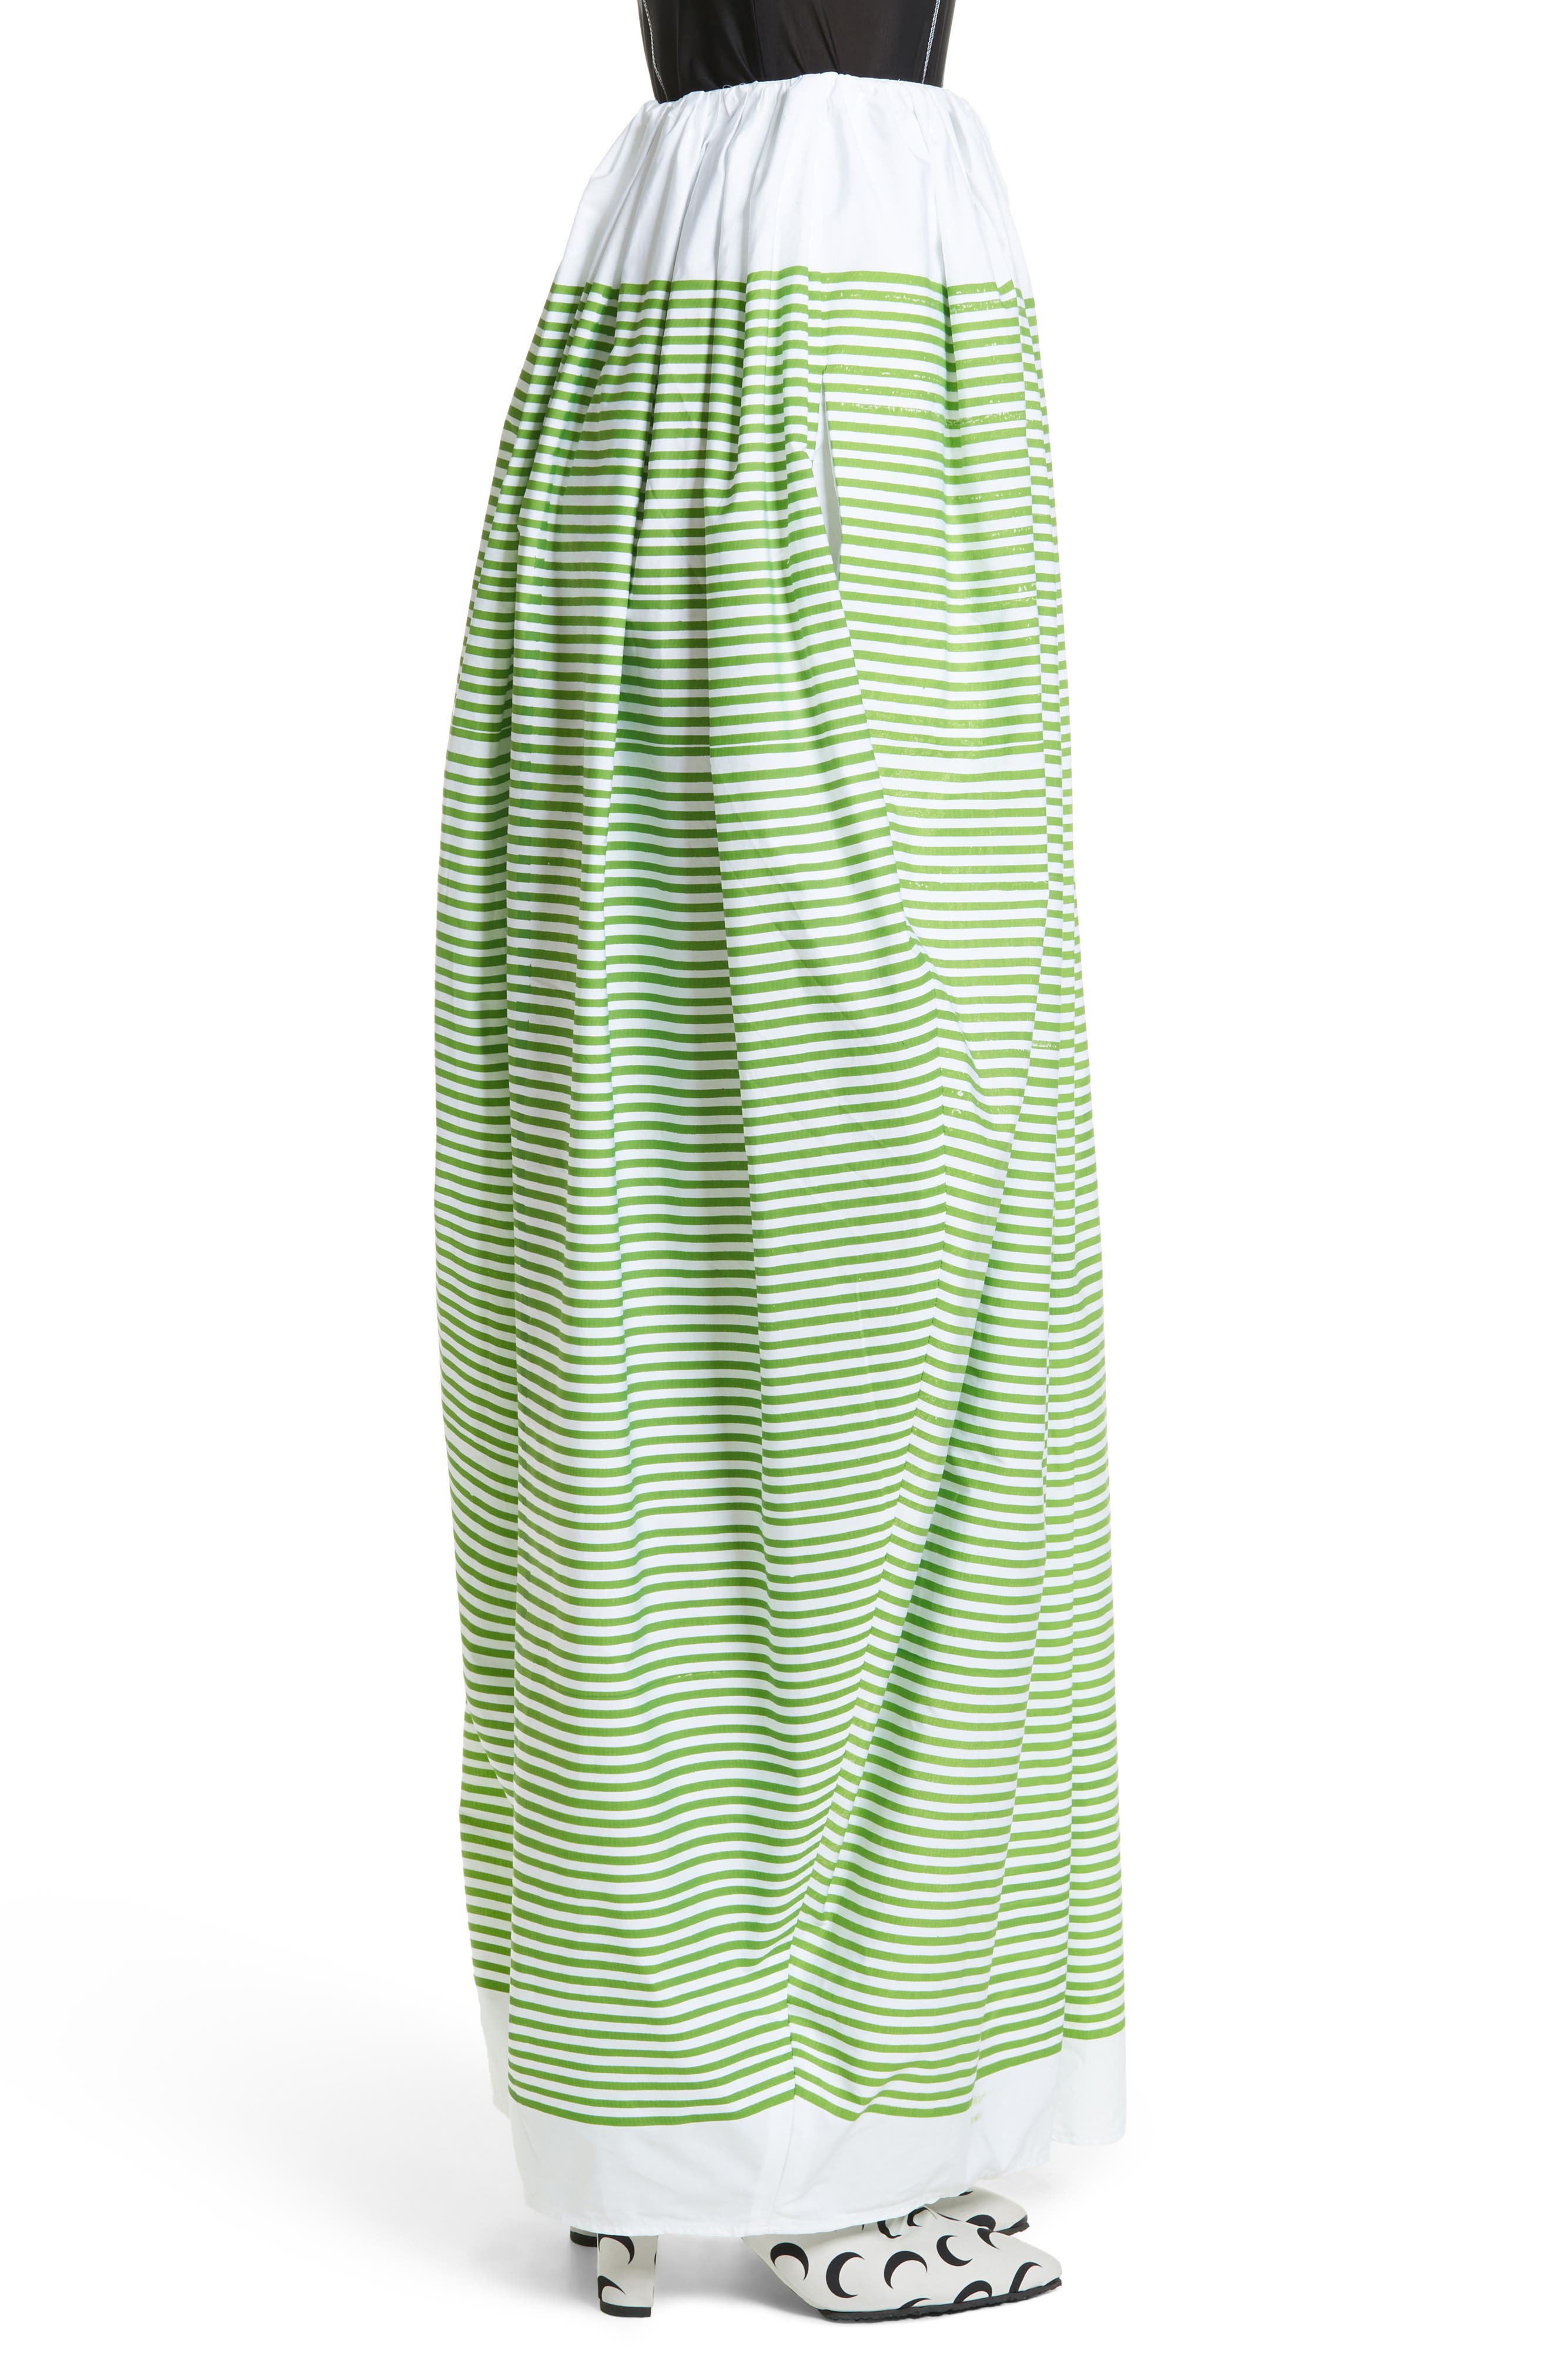 Stripe Ball Skirt,                             Alternate thumbnail 3, color,                             Green Striped